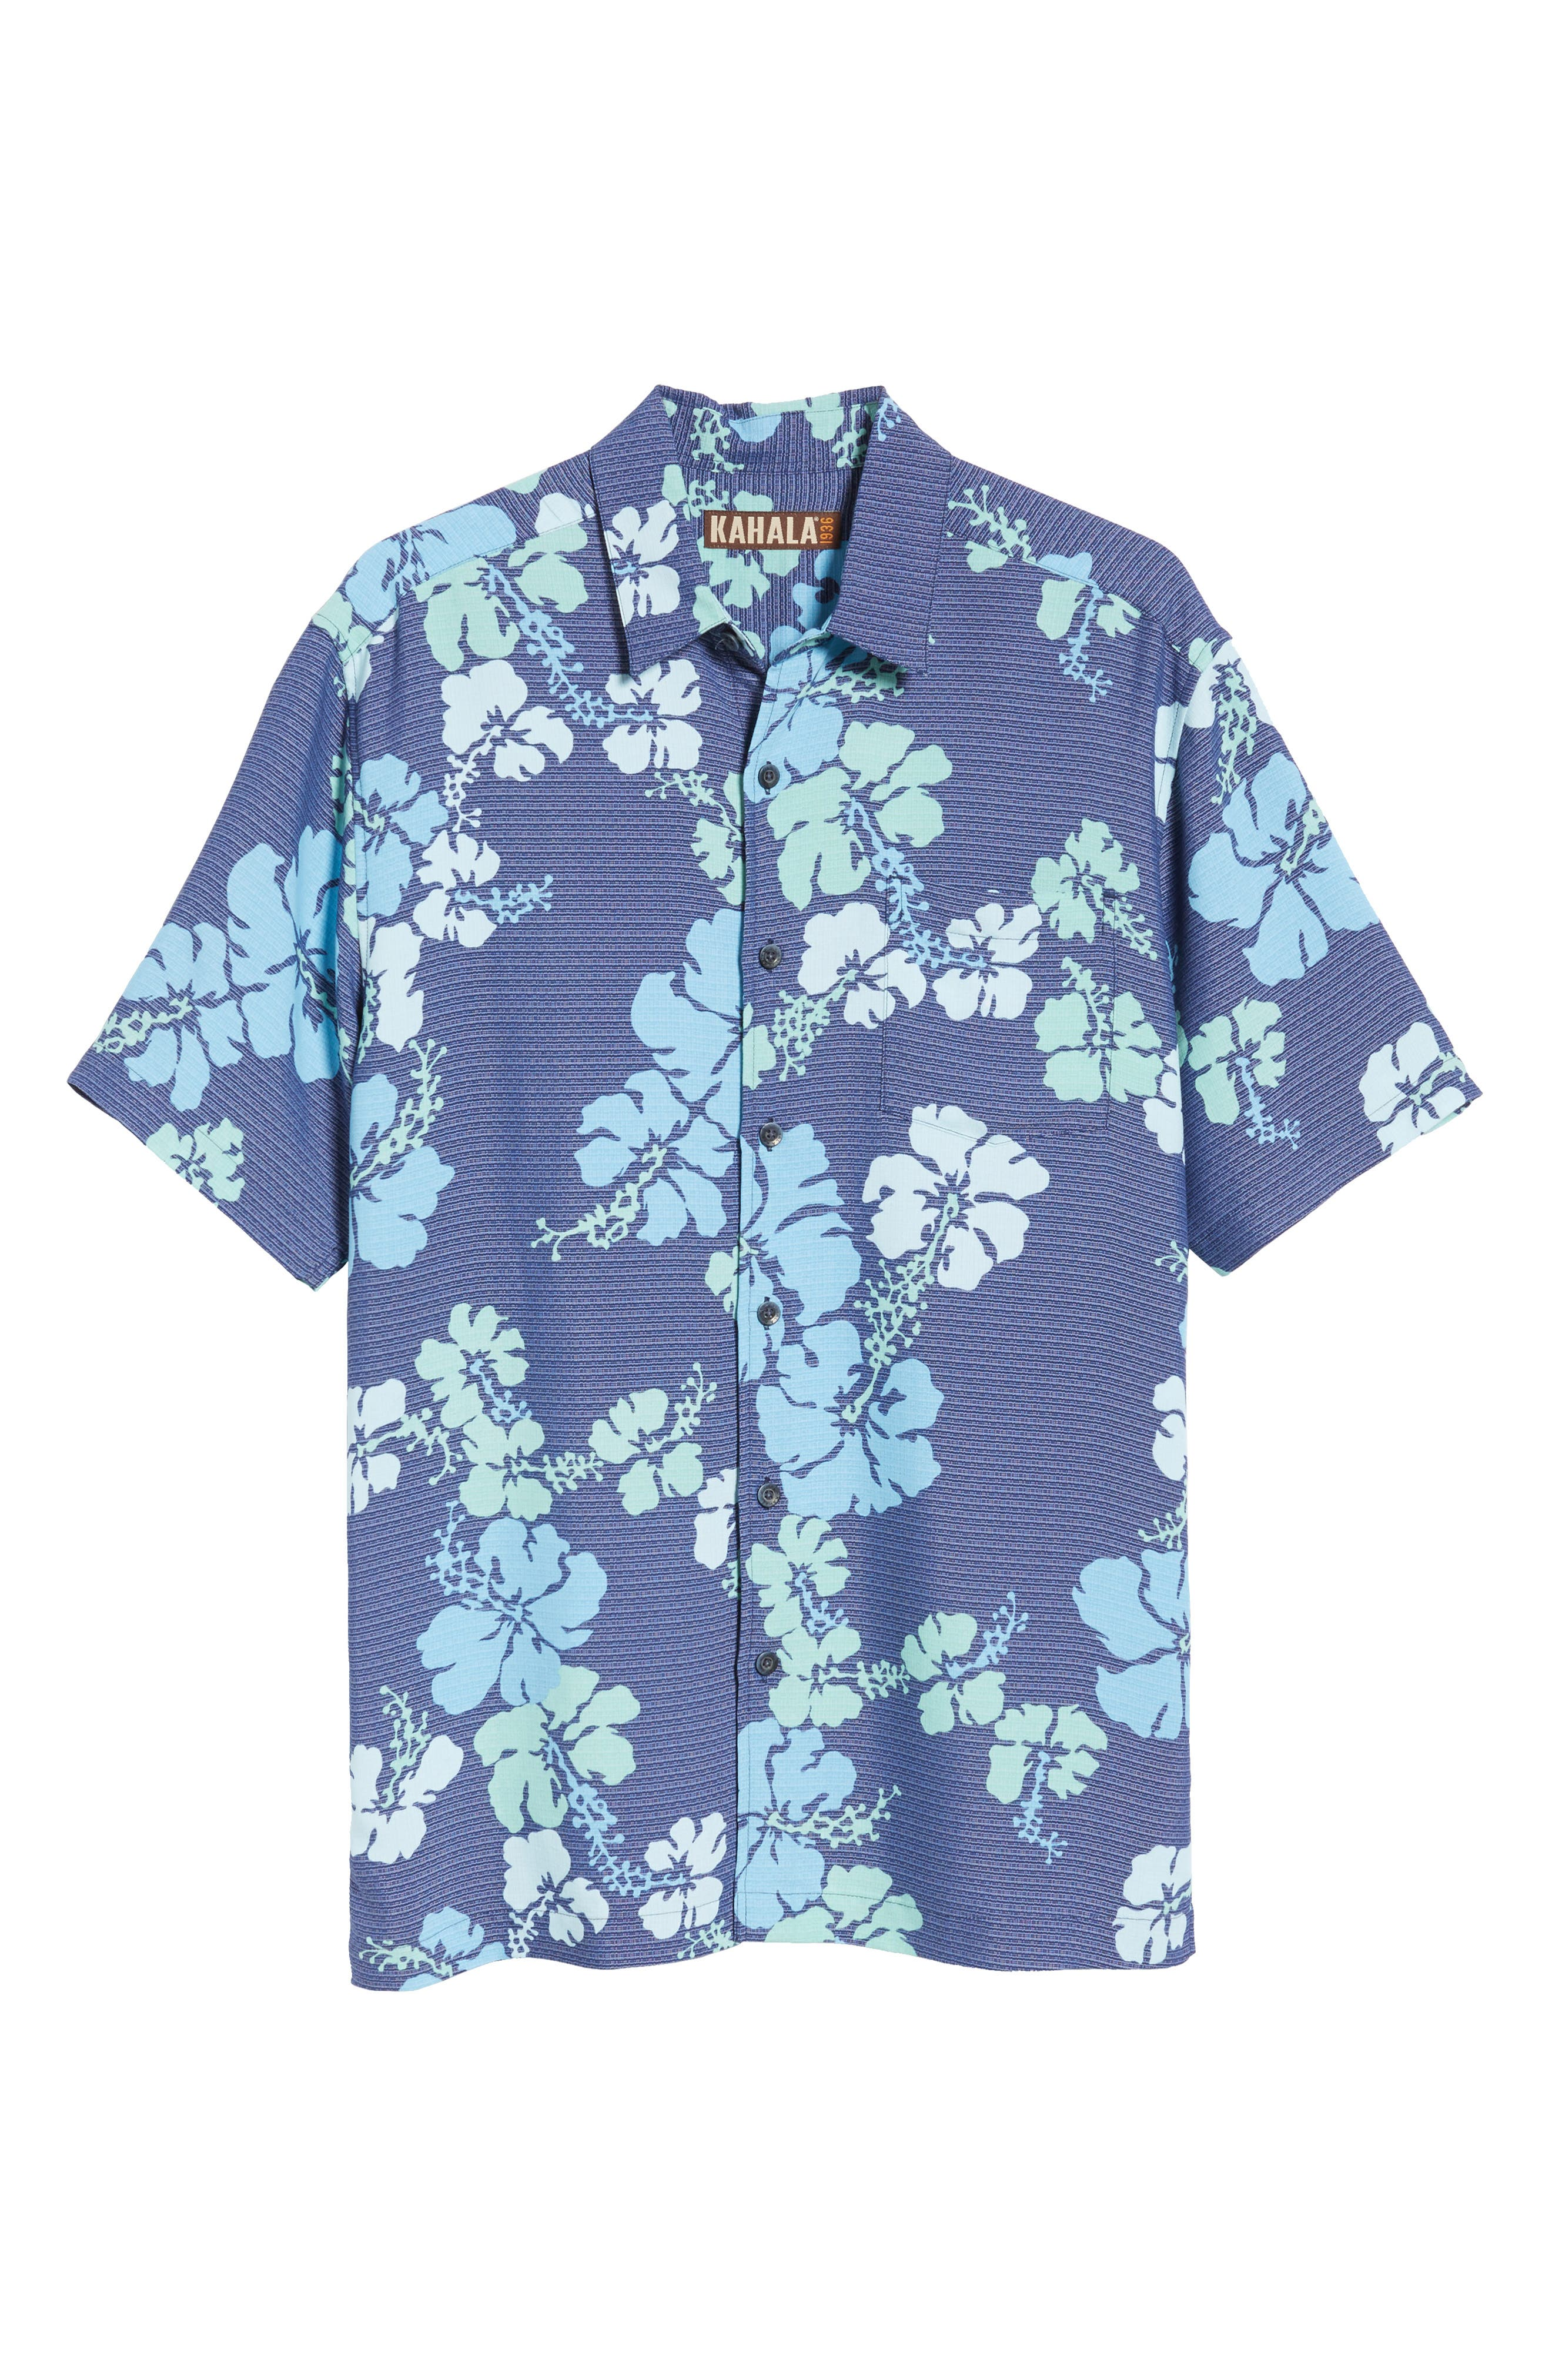 Lei Day Standard Fit Camp Shirt,                             Alternate thumbnail 6, color,                             415